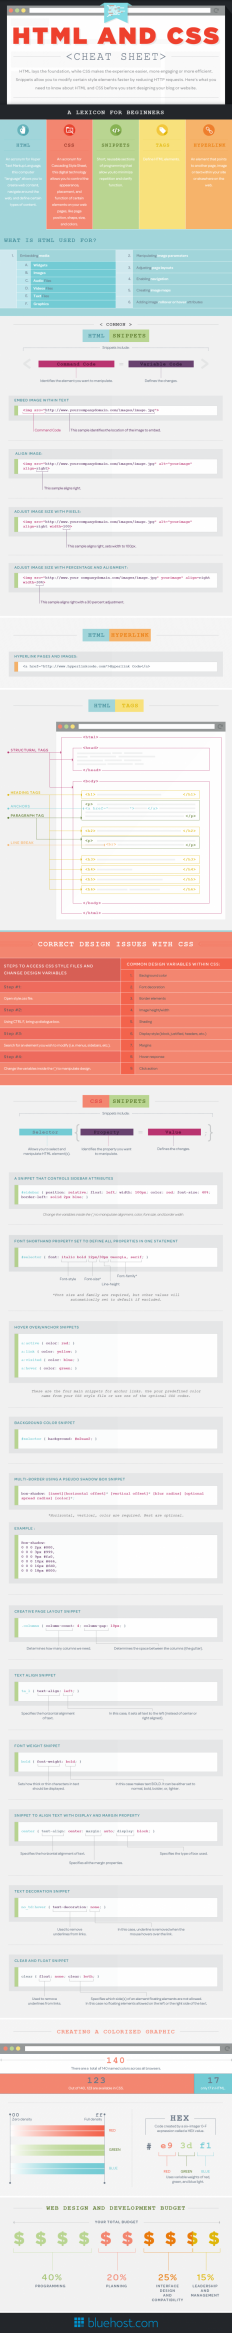 HTML and CSS Cheat Sheet (Infographic) on Inspirationde